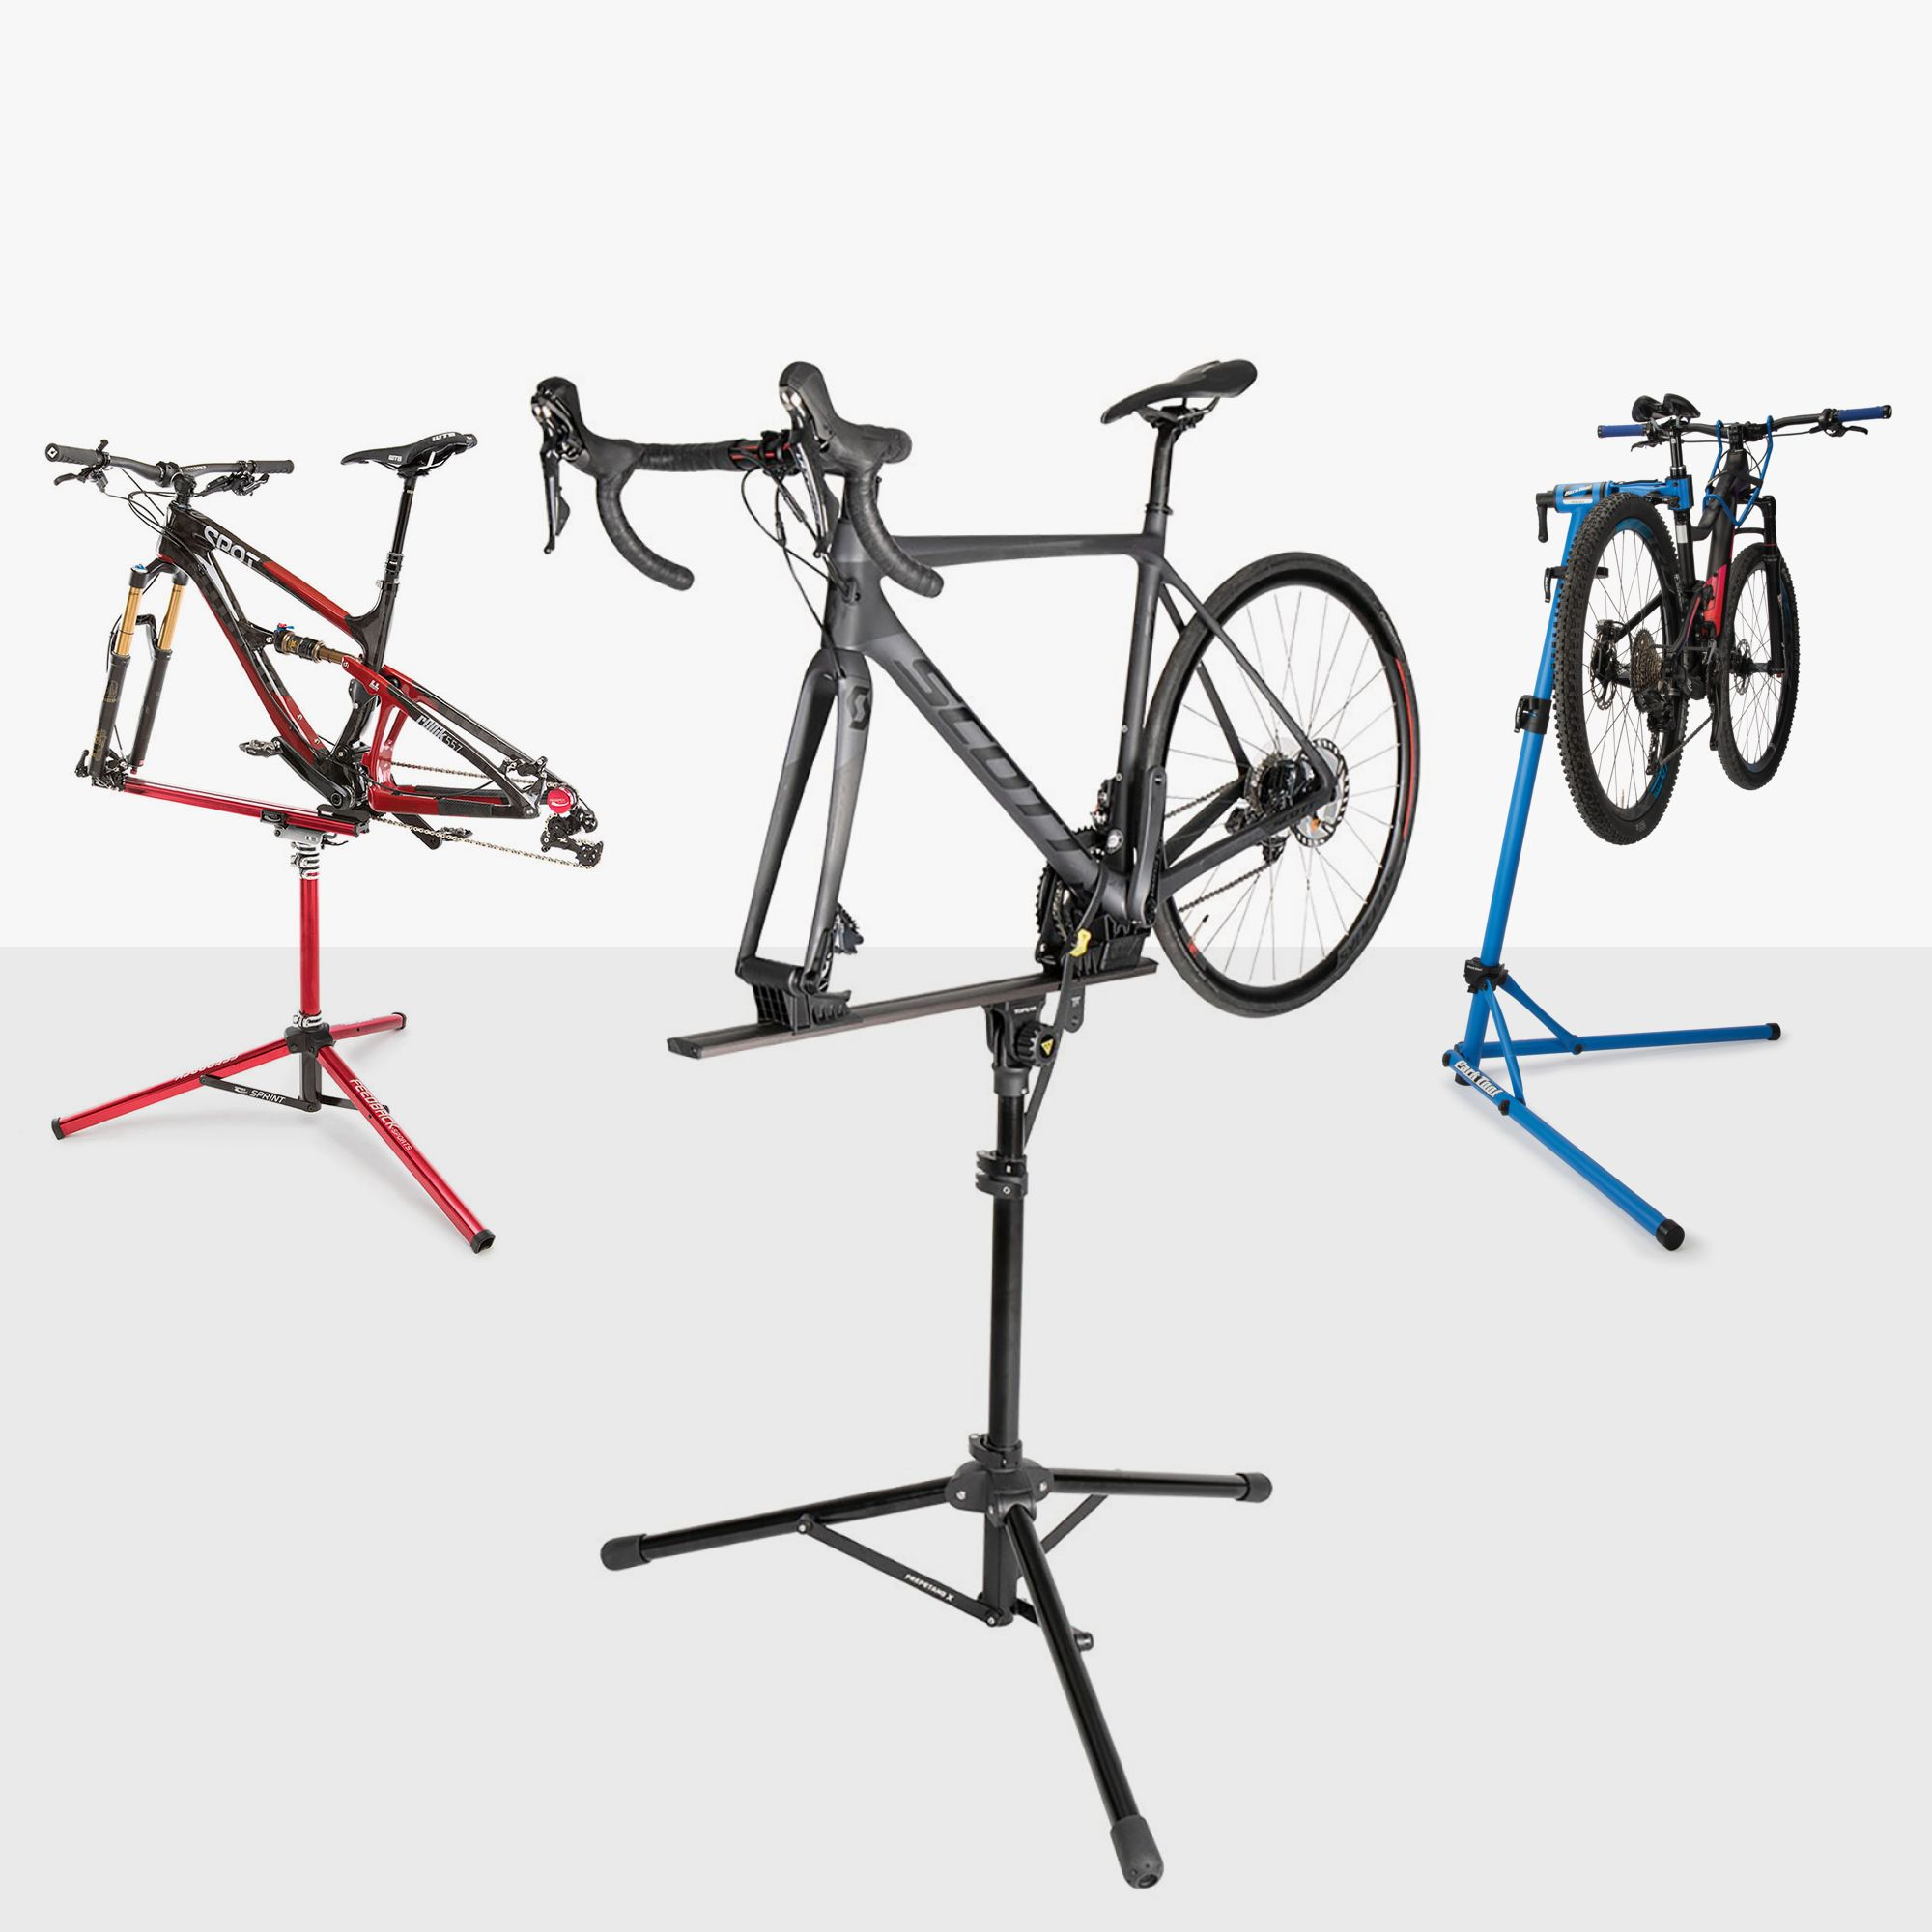 Bike Bicycle Maintenance Mechanic Repair Tool Rack Work Park Stand Holder Charm